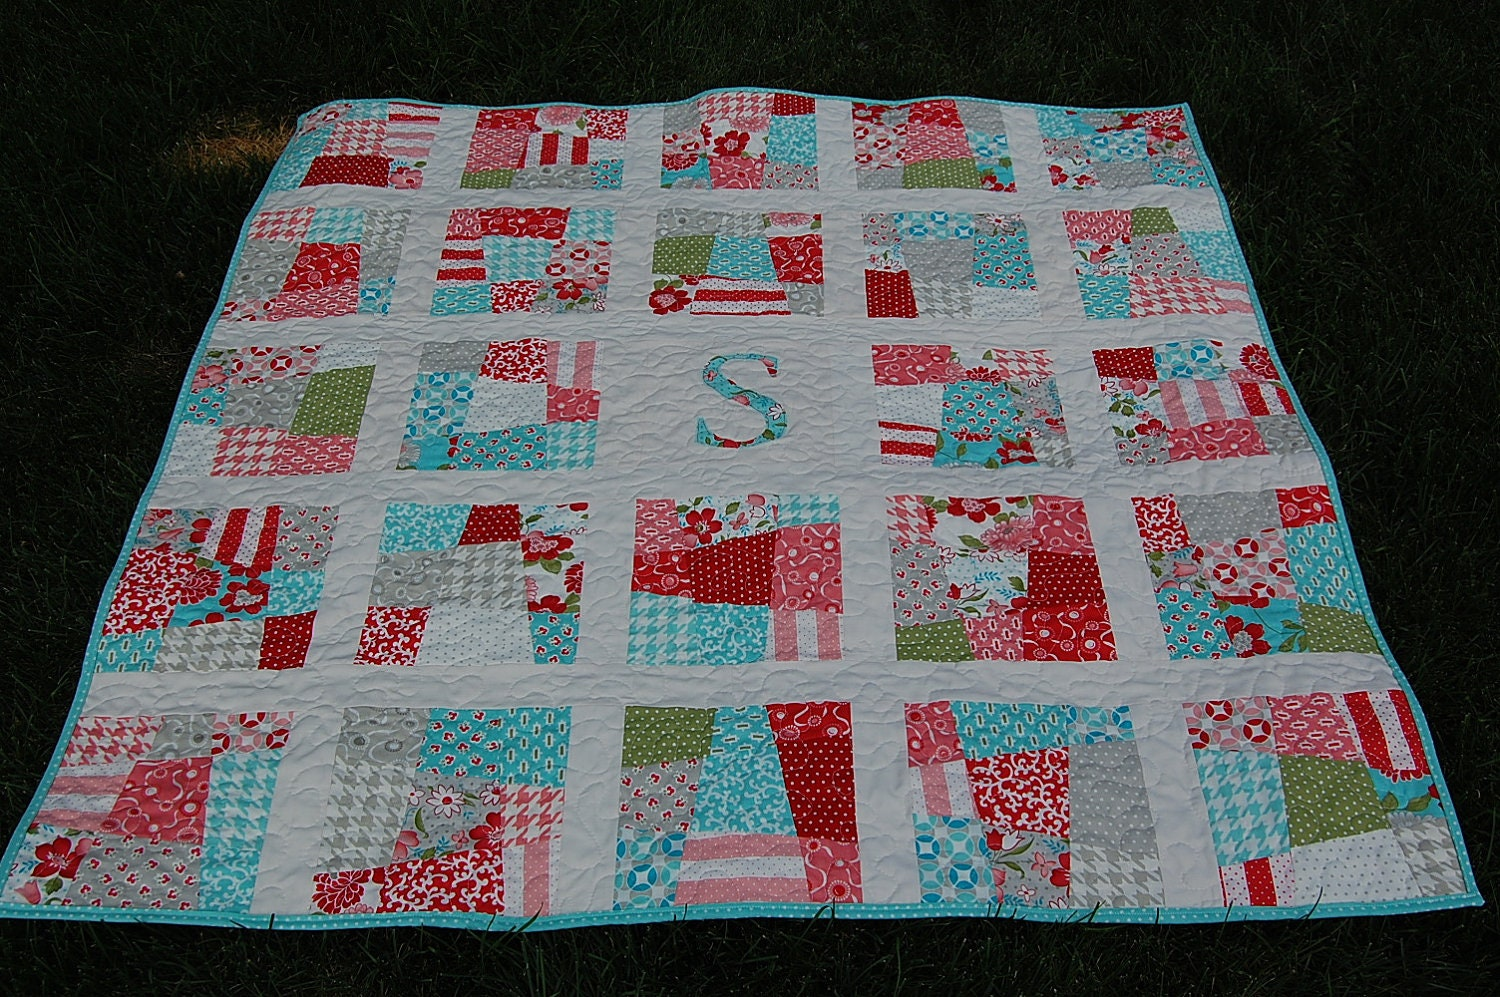 Scrappy Initial Patchwork Quilt PaTTERN PDF - Baby Quilt - Lap ... : patterns for lap quilts - Adamdwight.com